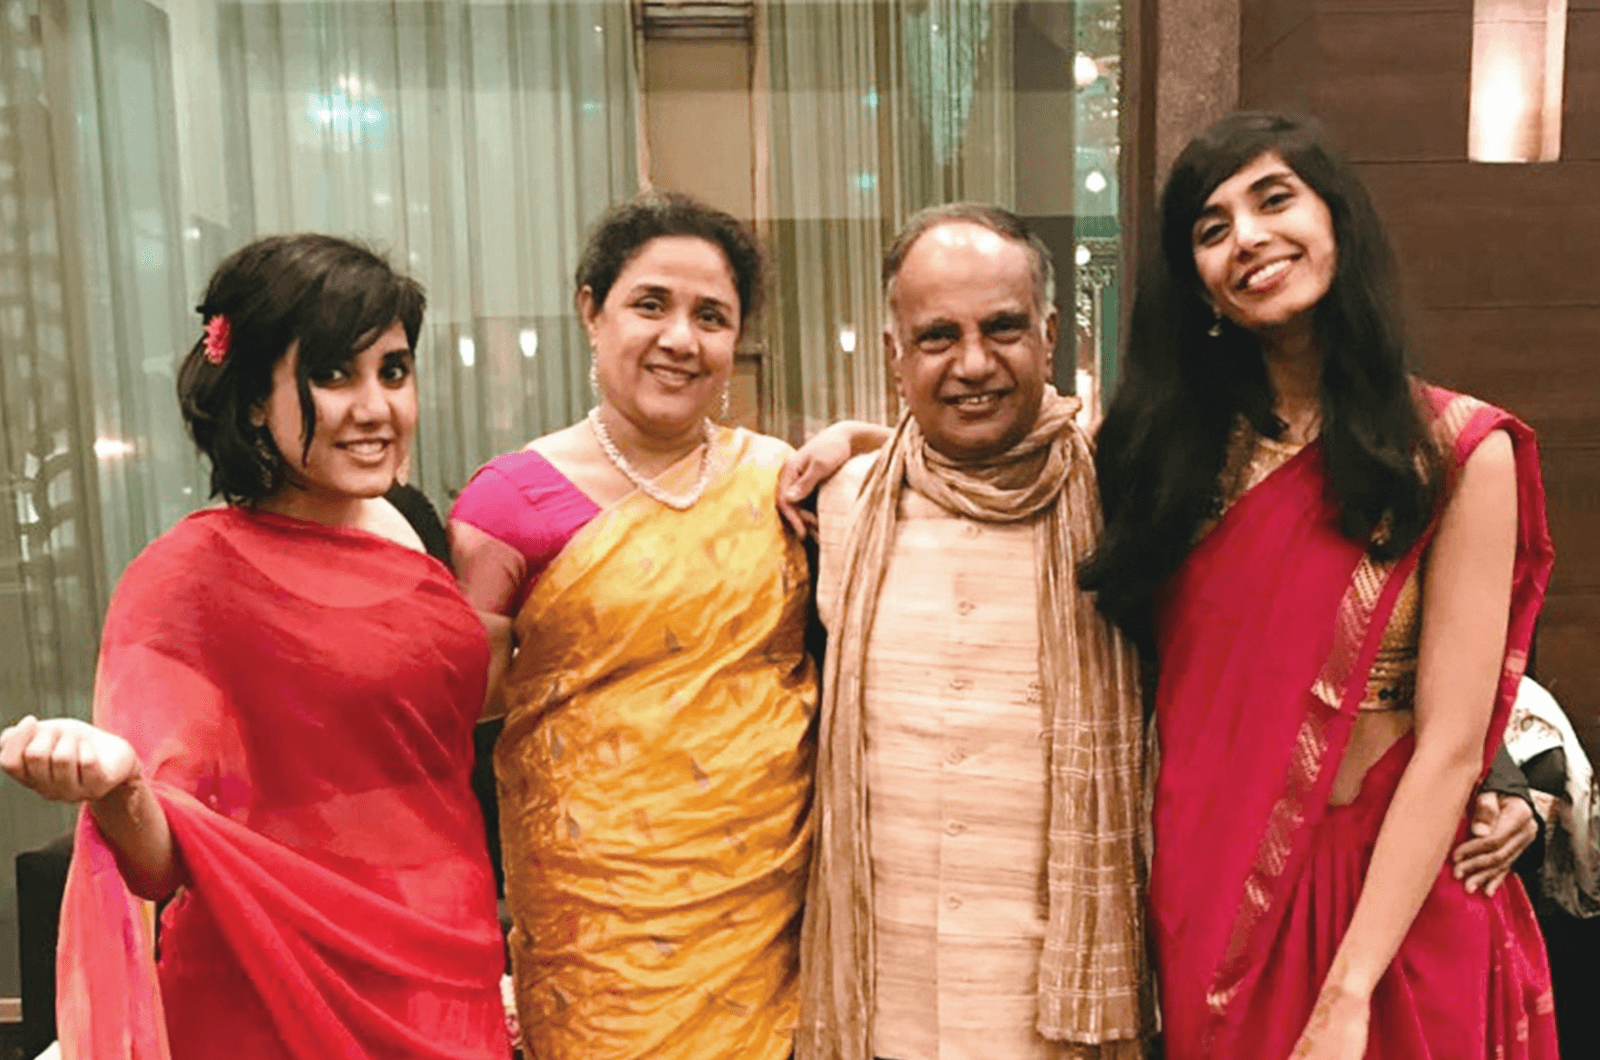 The Menons and their daughters, Ramita, left, and Rajita.